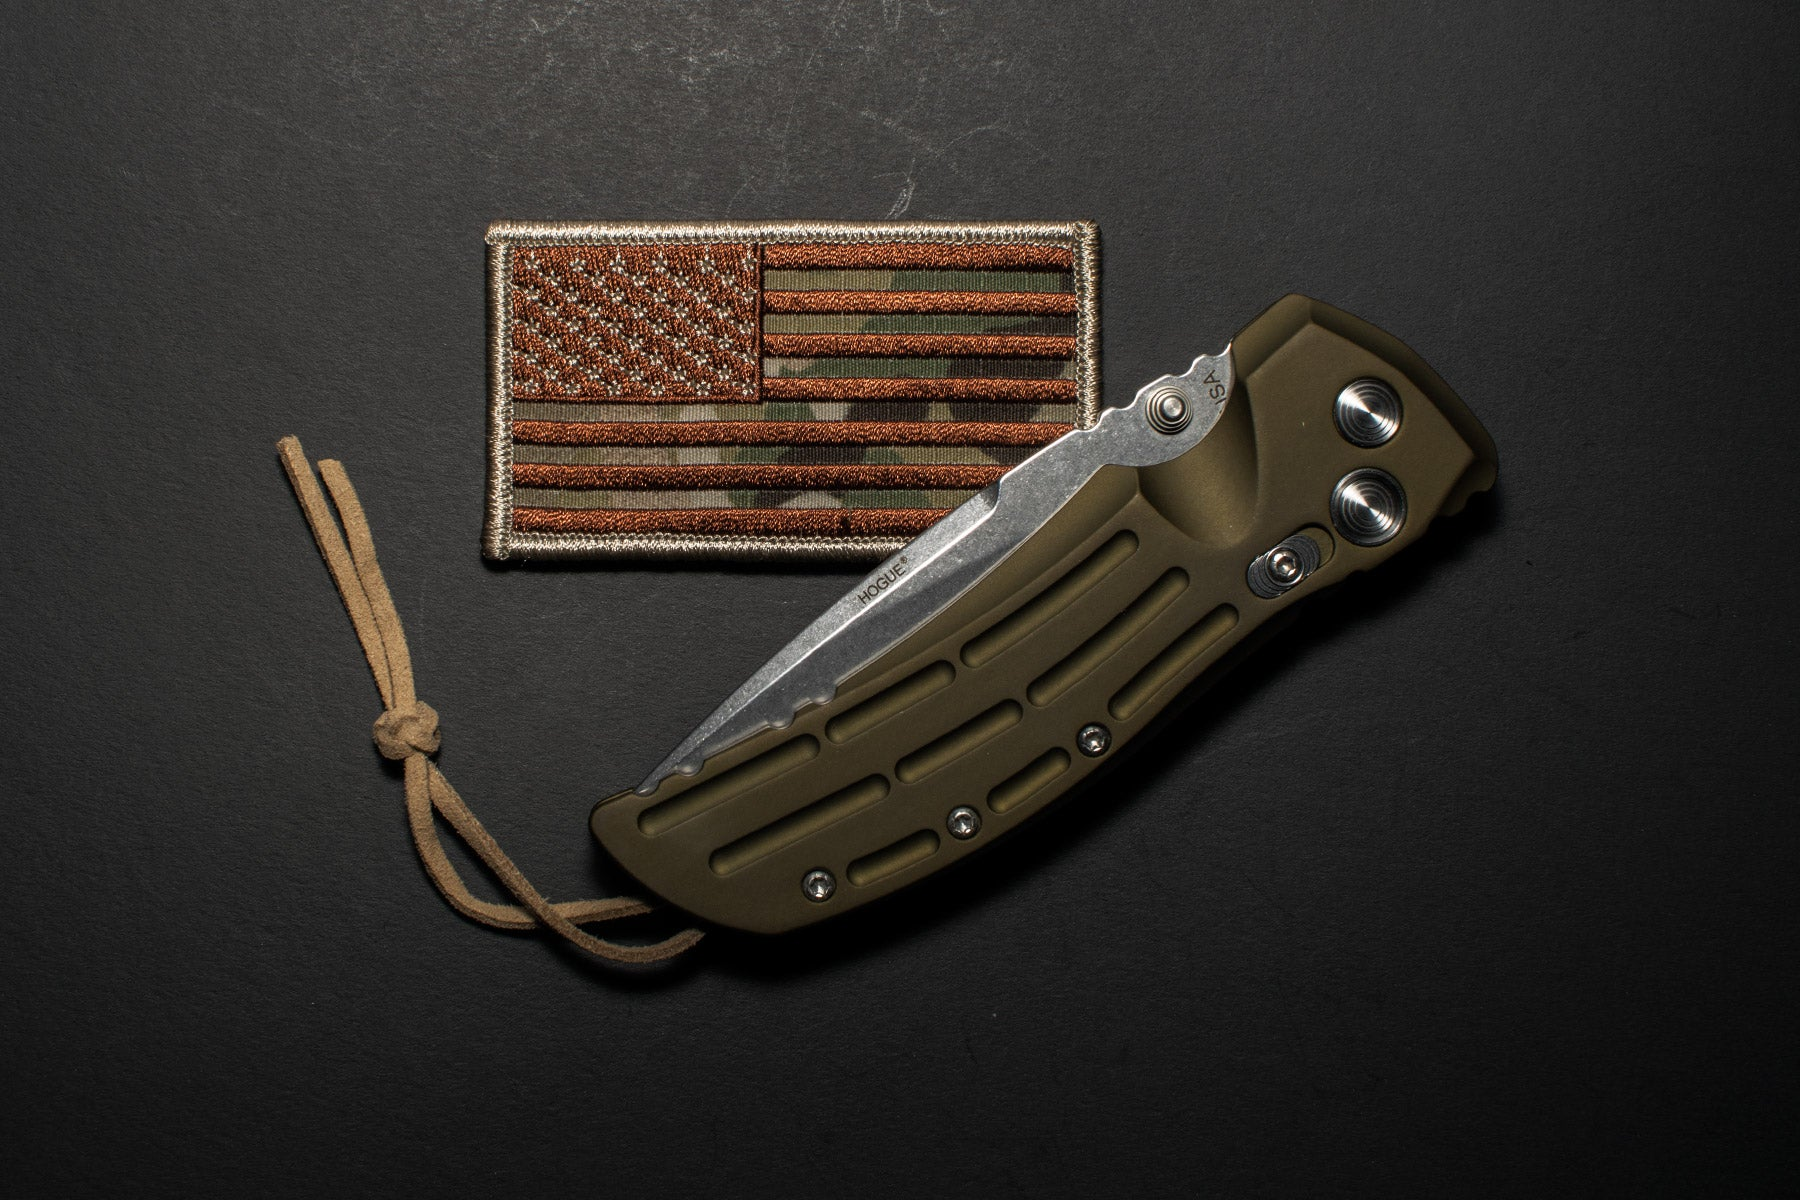 USA Made Hogue Knives